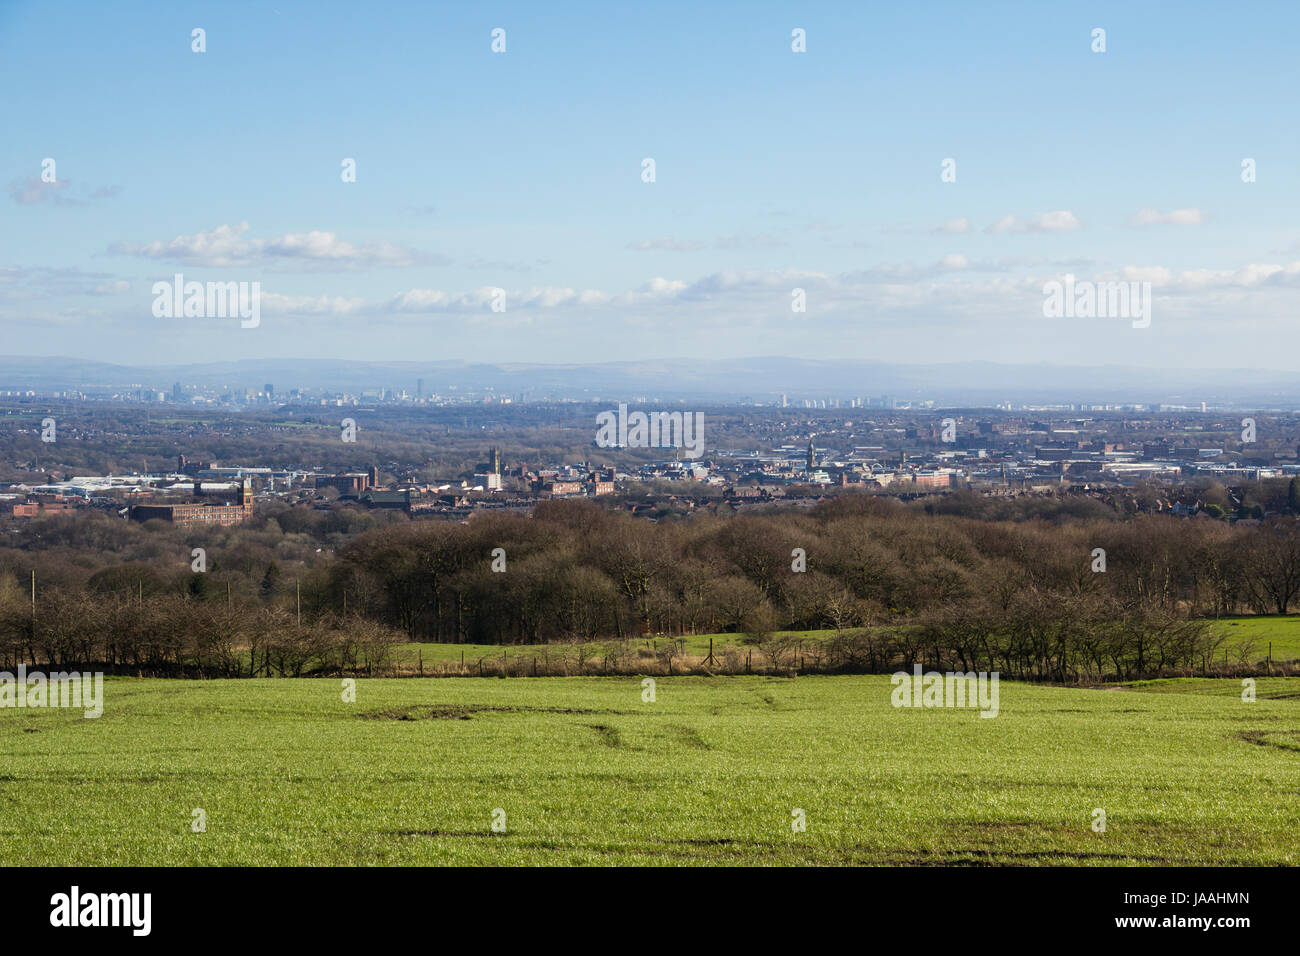 Landscape of Bolton taken from Scout Road, overlooking the width of the town centre. Beyond Bolton is Manchester - Stock Image